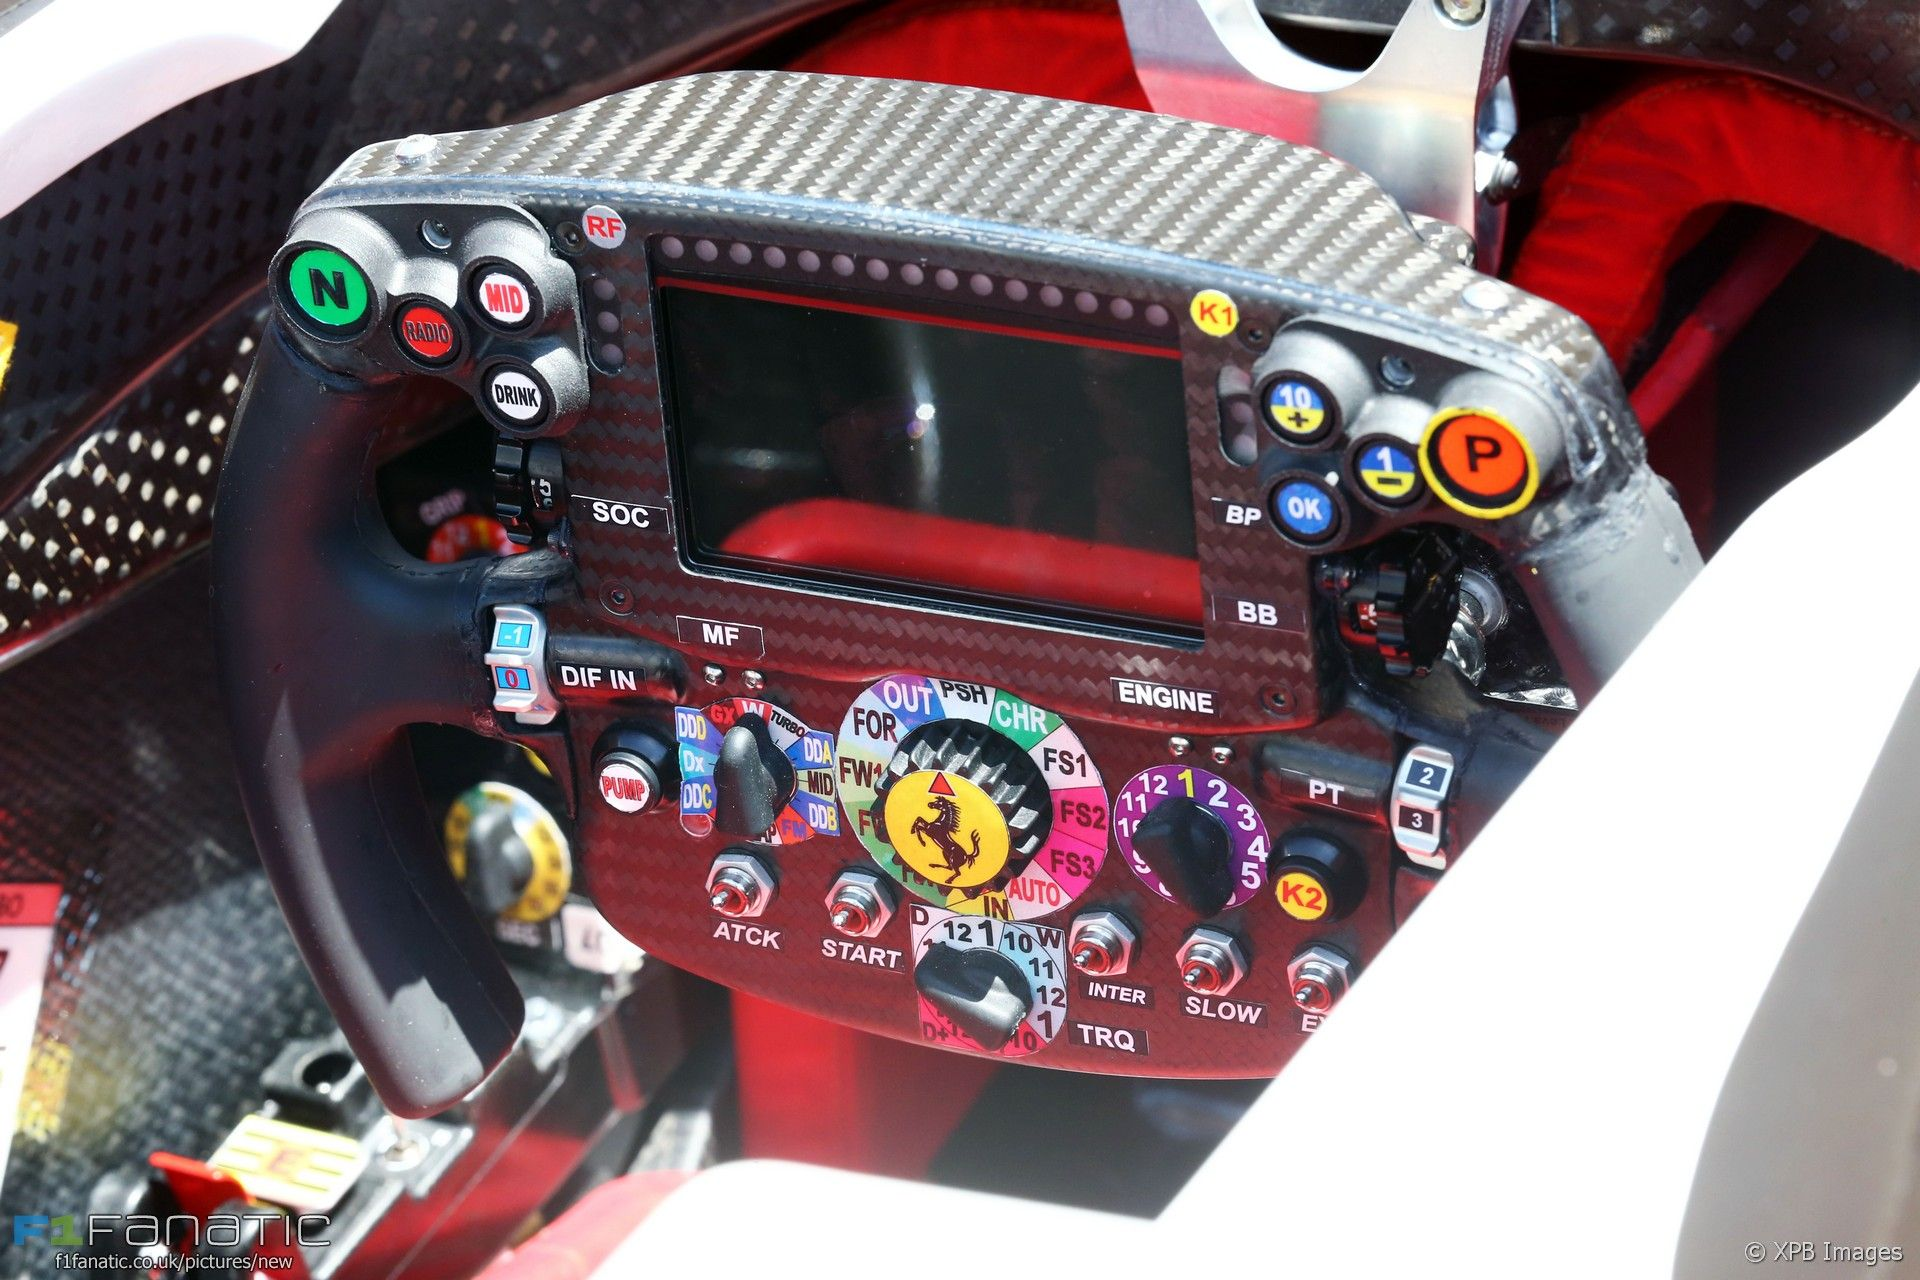 ferrari steering wheel bahrain international circuit 2016 f1 2016 pinterest ferrari. Black Bedroom Furniture Sets. Home Design Ideas